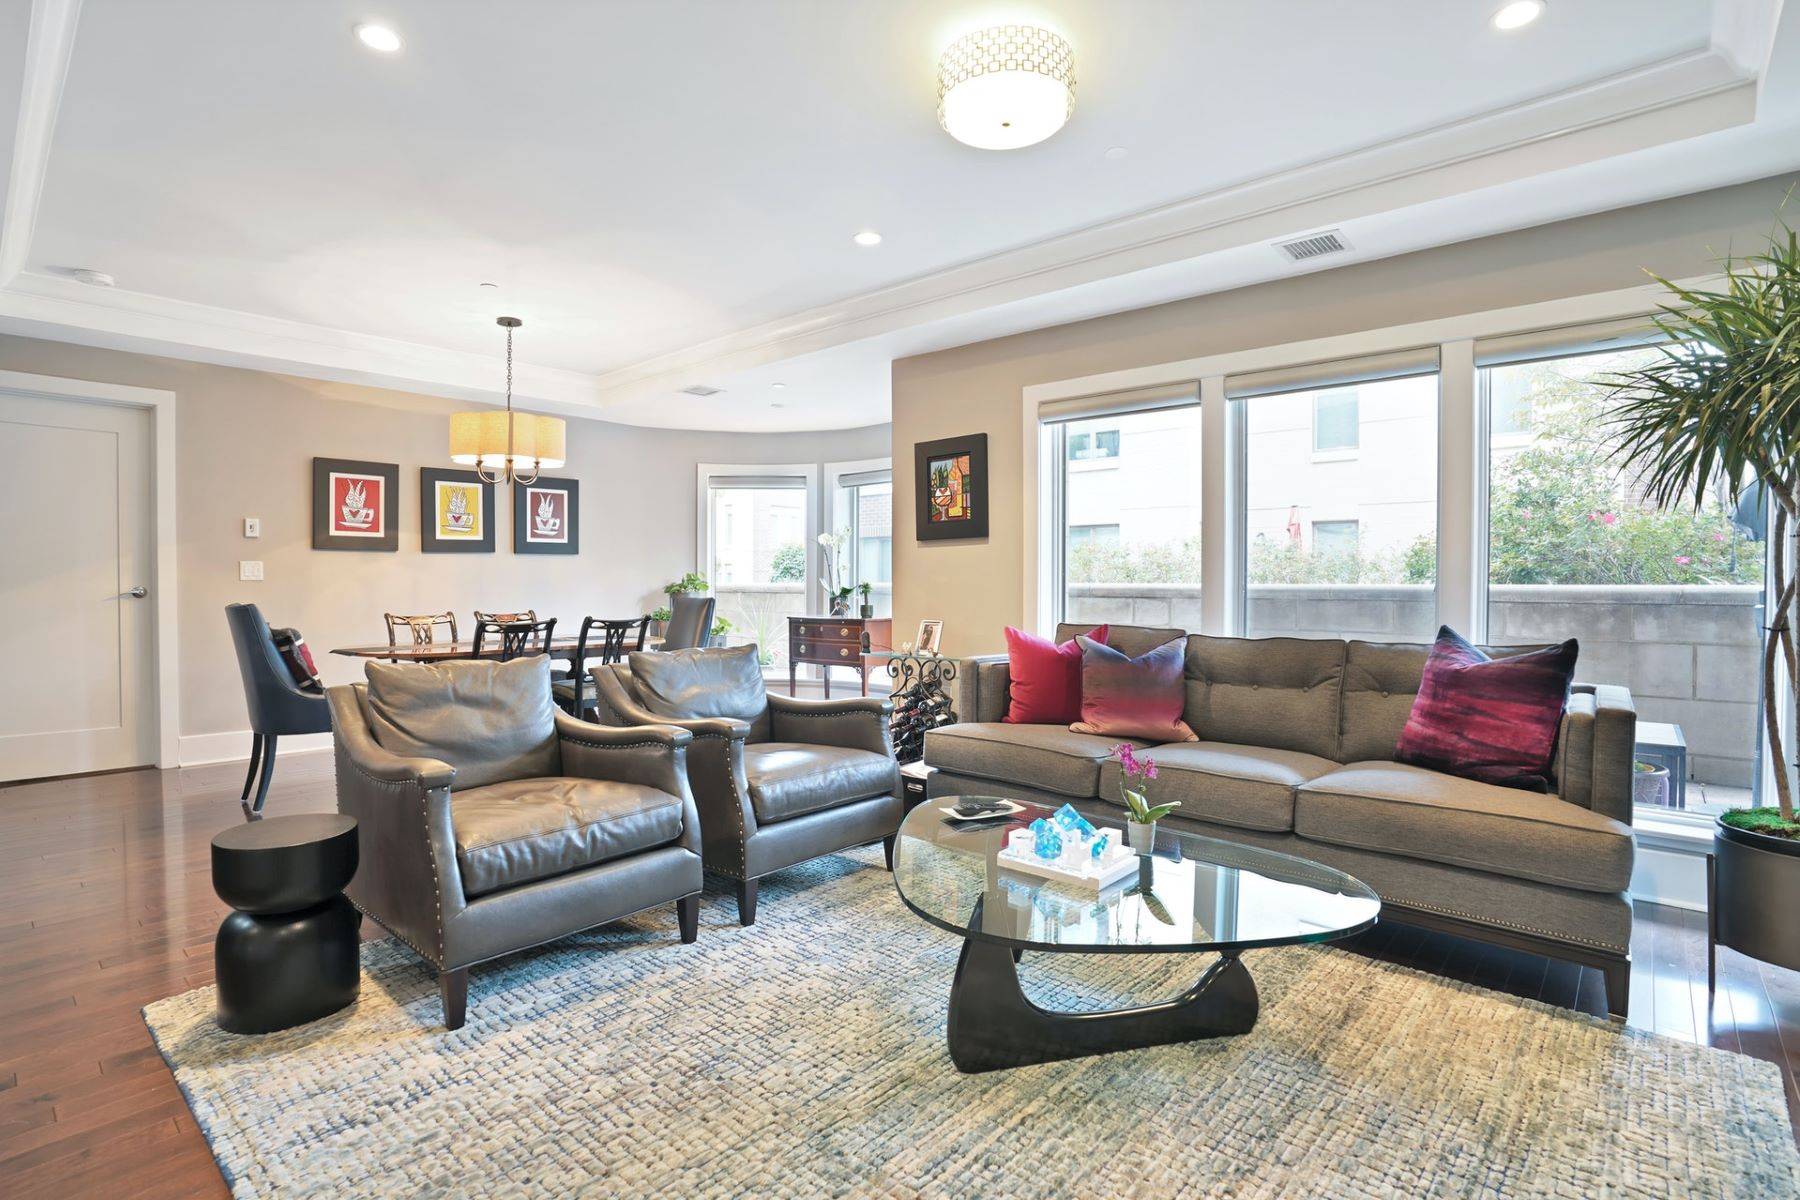 townhouses for Sale at Henley on Hudson 22 Eton Row, Weehawken, New Jersey 07086 United States